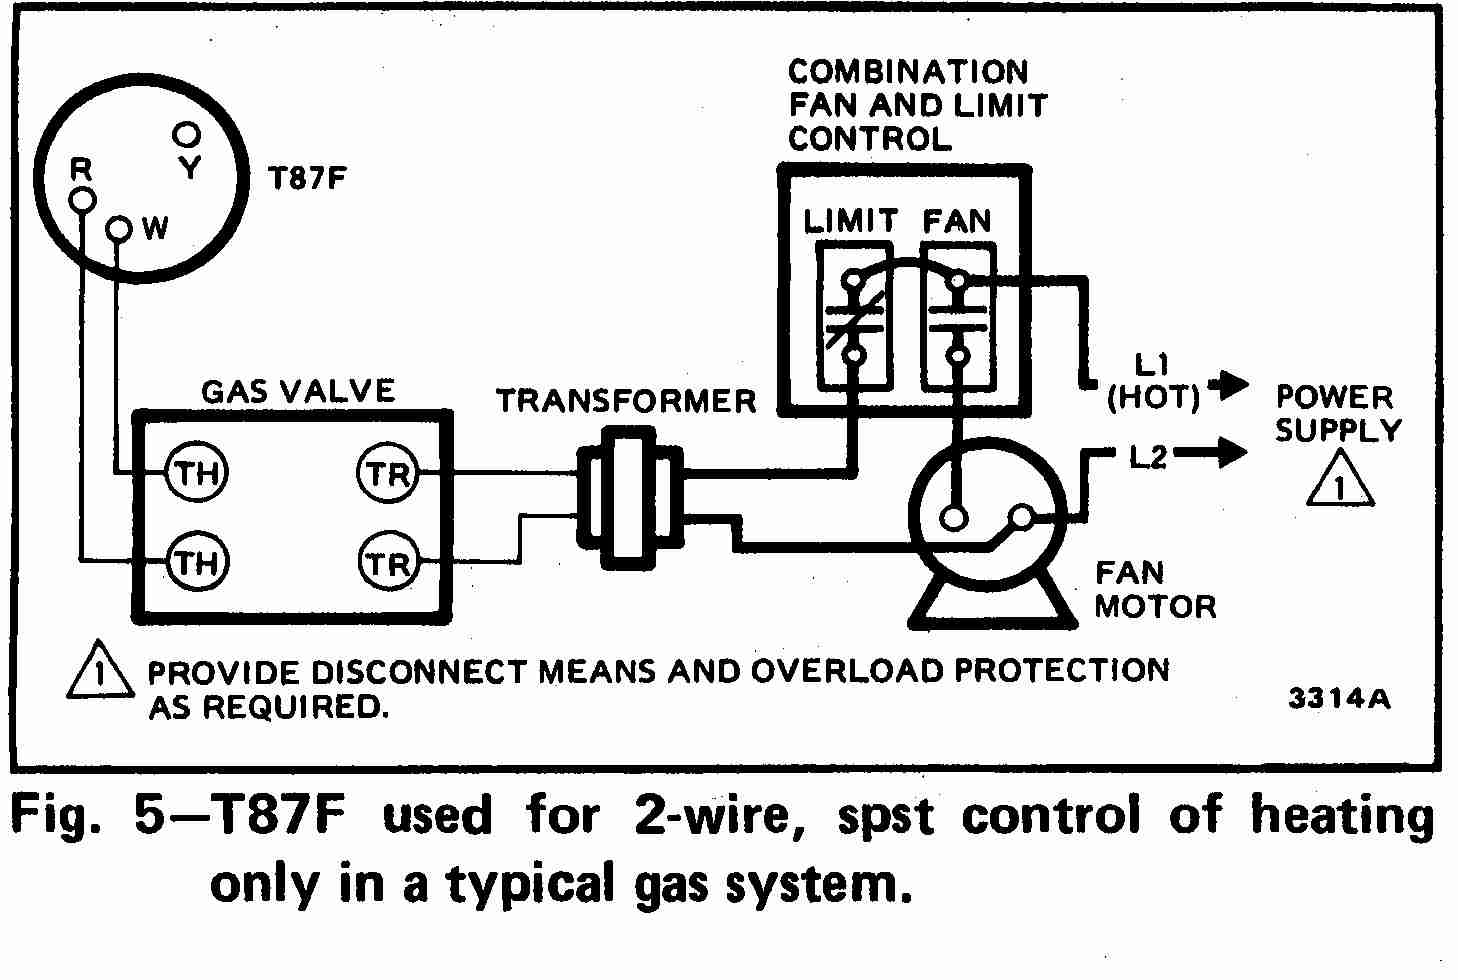 TT_T87F_0002_2Wg_DJF room thermostat wiring diagrams for hvac systems electric thermostat wiring diagram at edmiracle.co